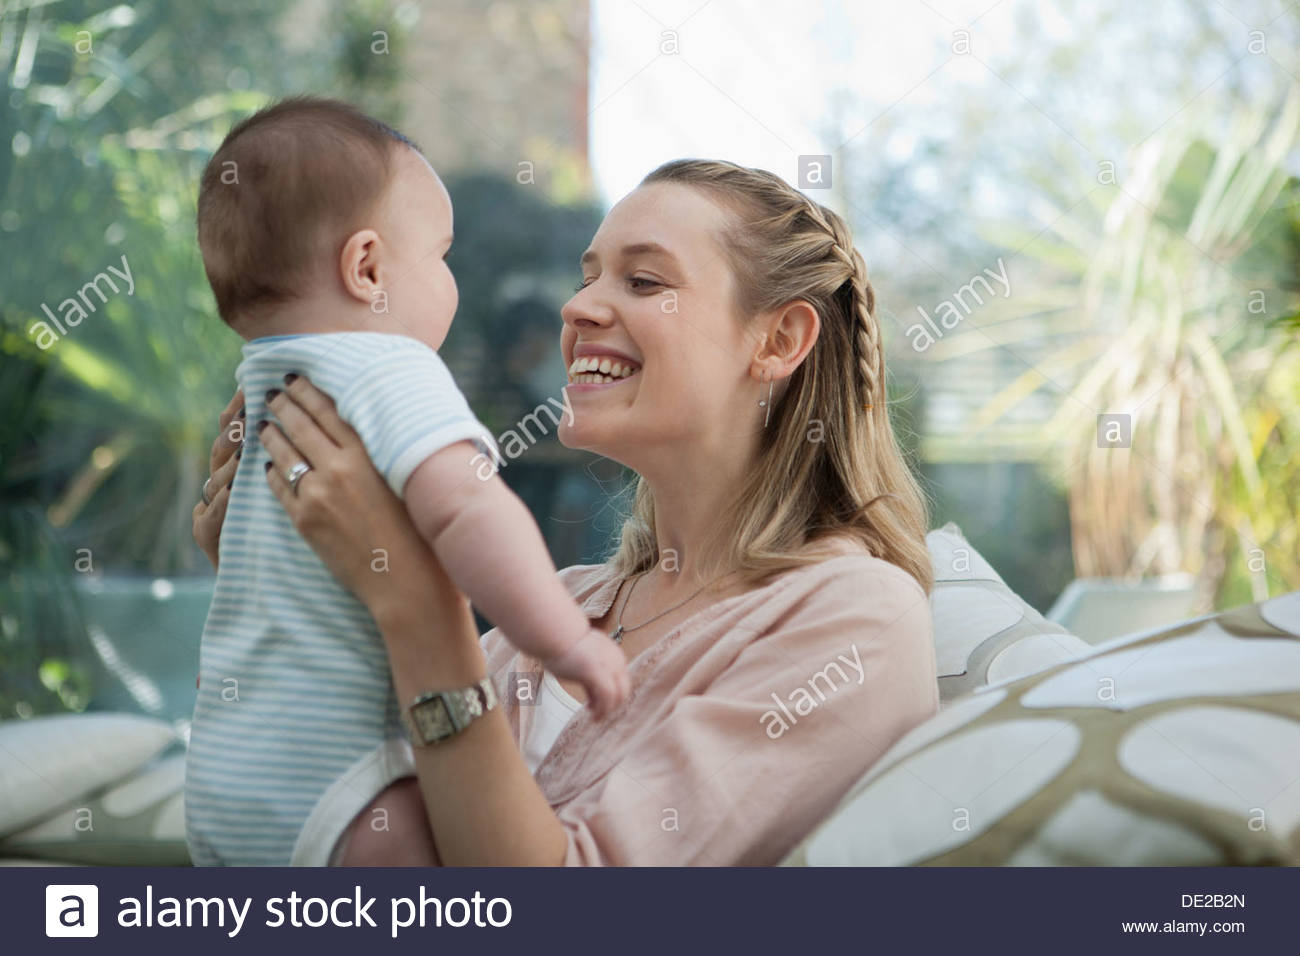 Smiling mother lifting baby son - Stock Image